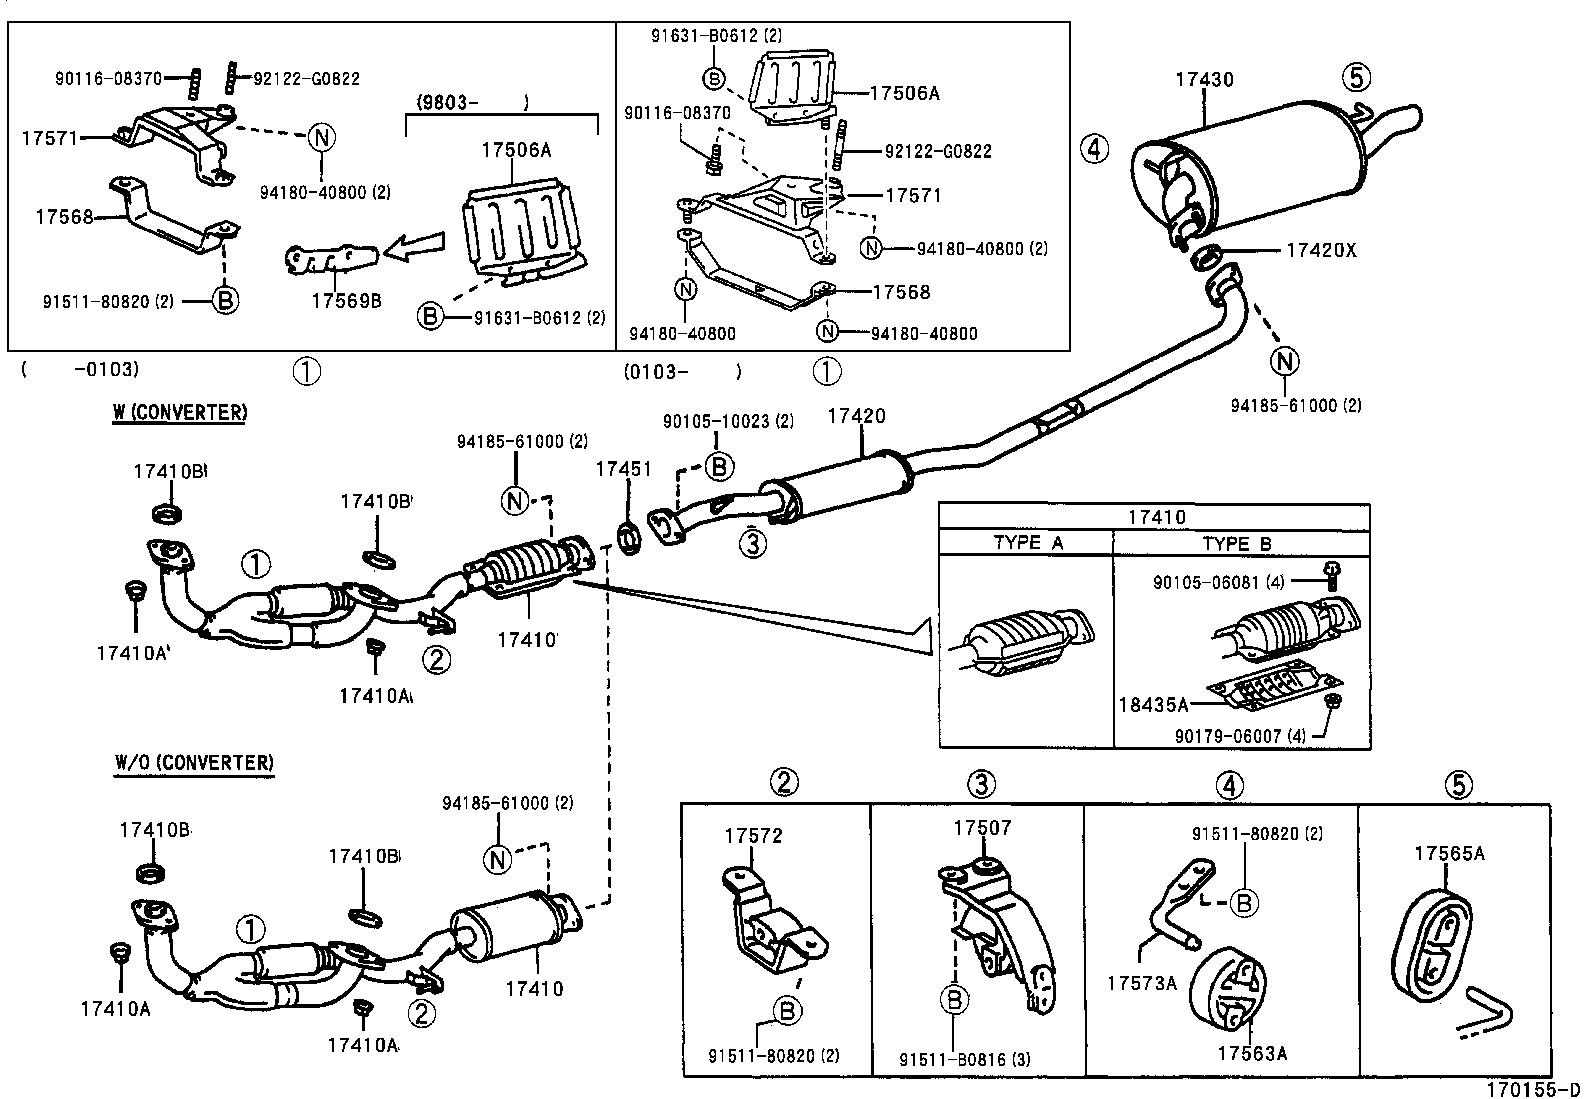 2000 Camry Fuel System Diagram, 2000, Free Engine Image